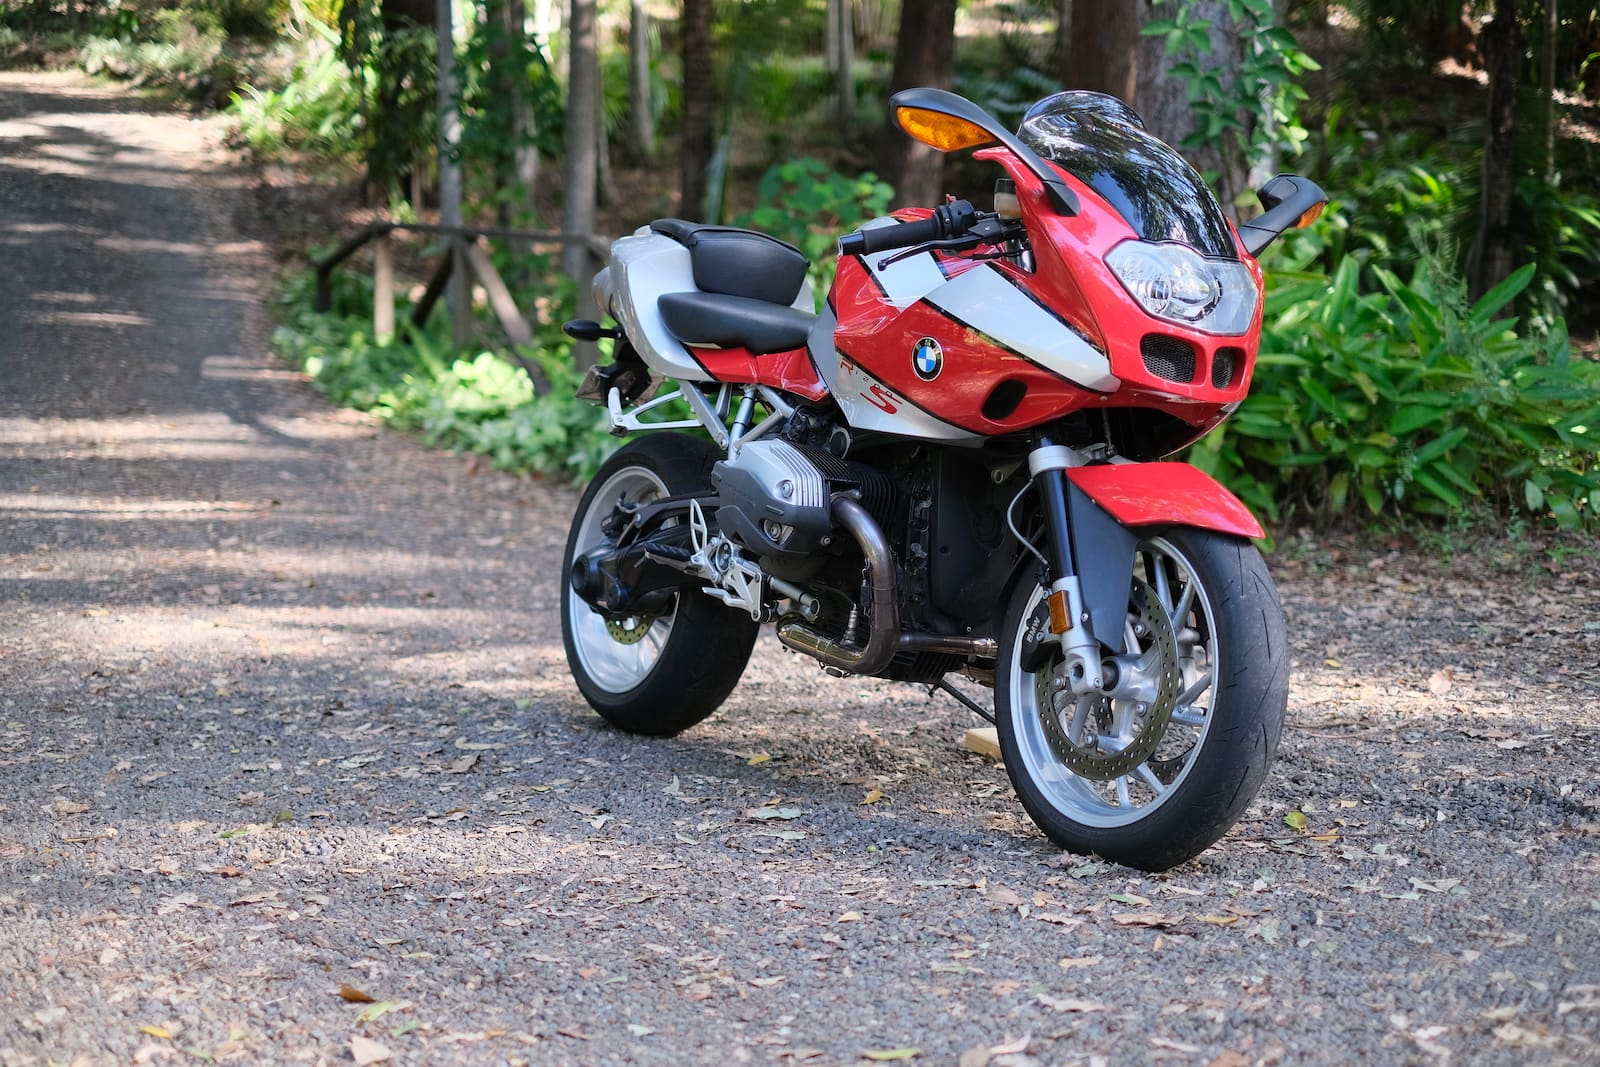 BMW R1200S in red and silver - side view on a dirt road